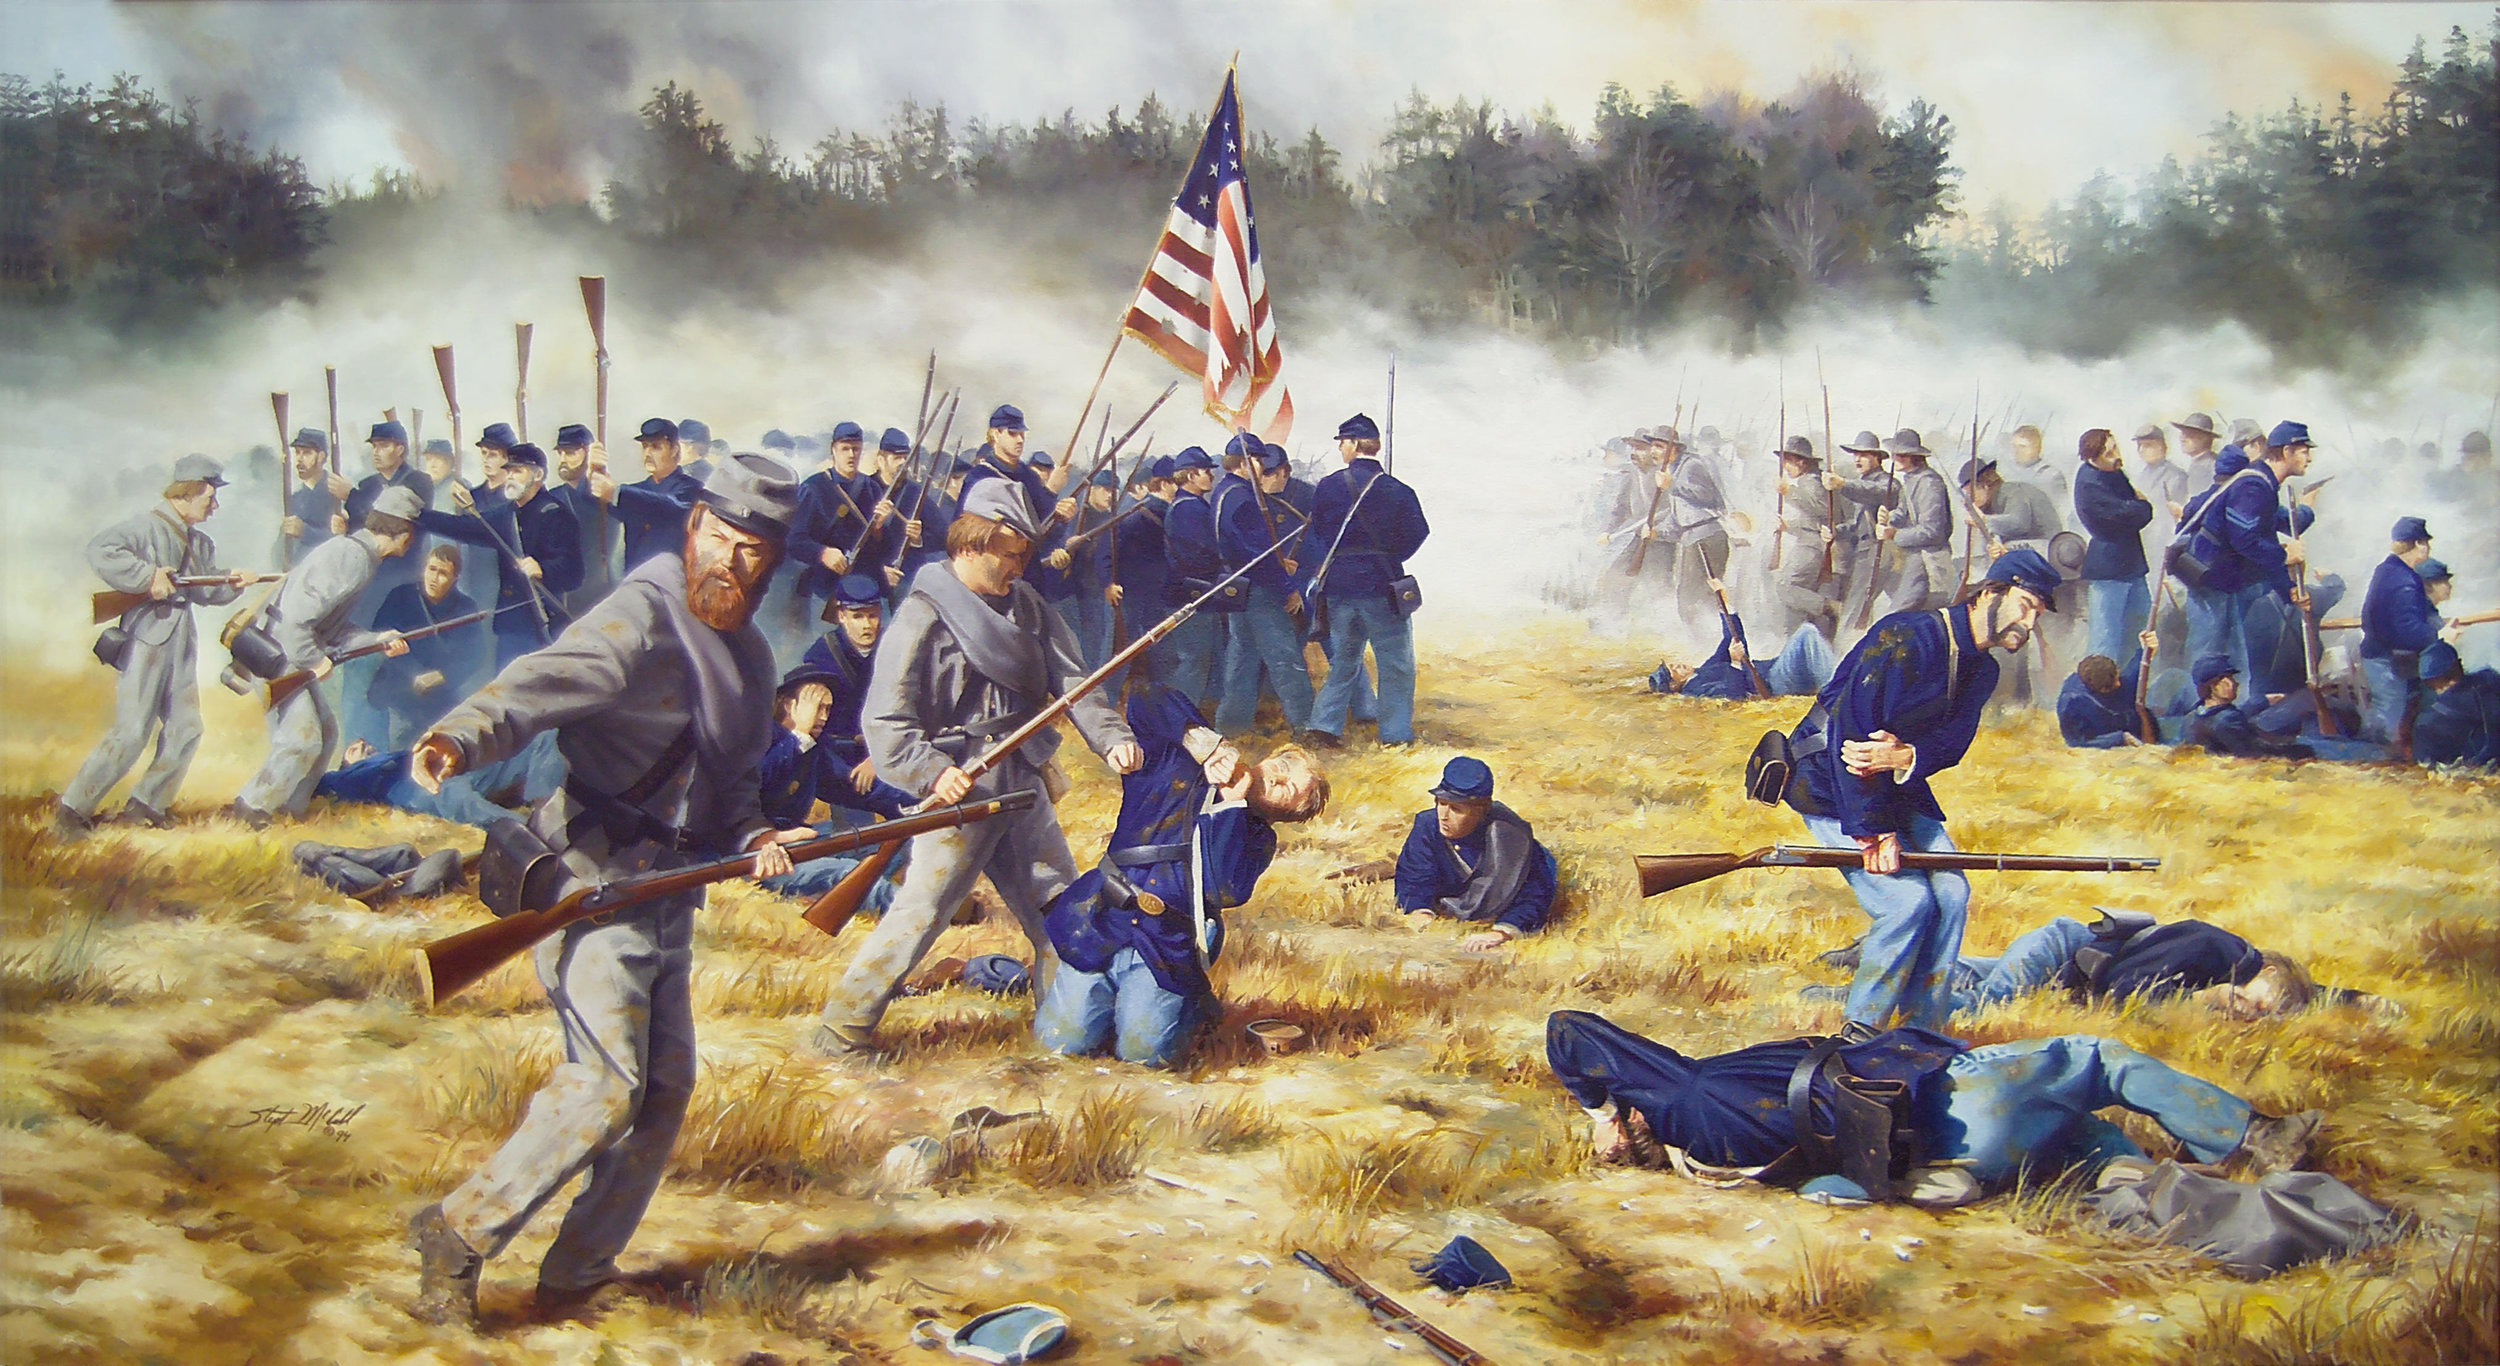 "McCall painting named the 'Surrender of the 15th Connecticut"" however part of that capture was also some of the soldiers from the 27th Massachusetts."